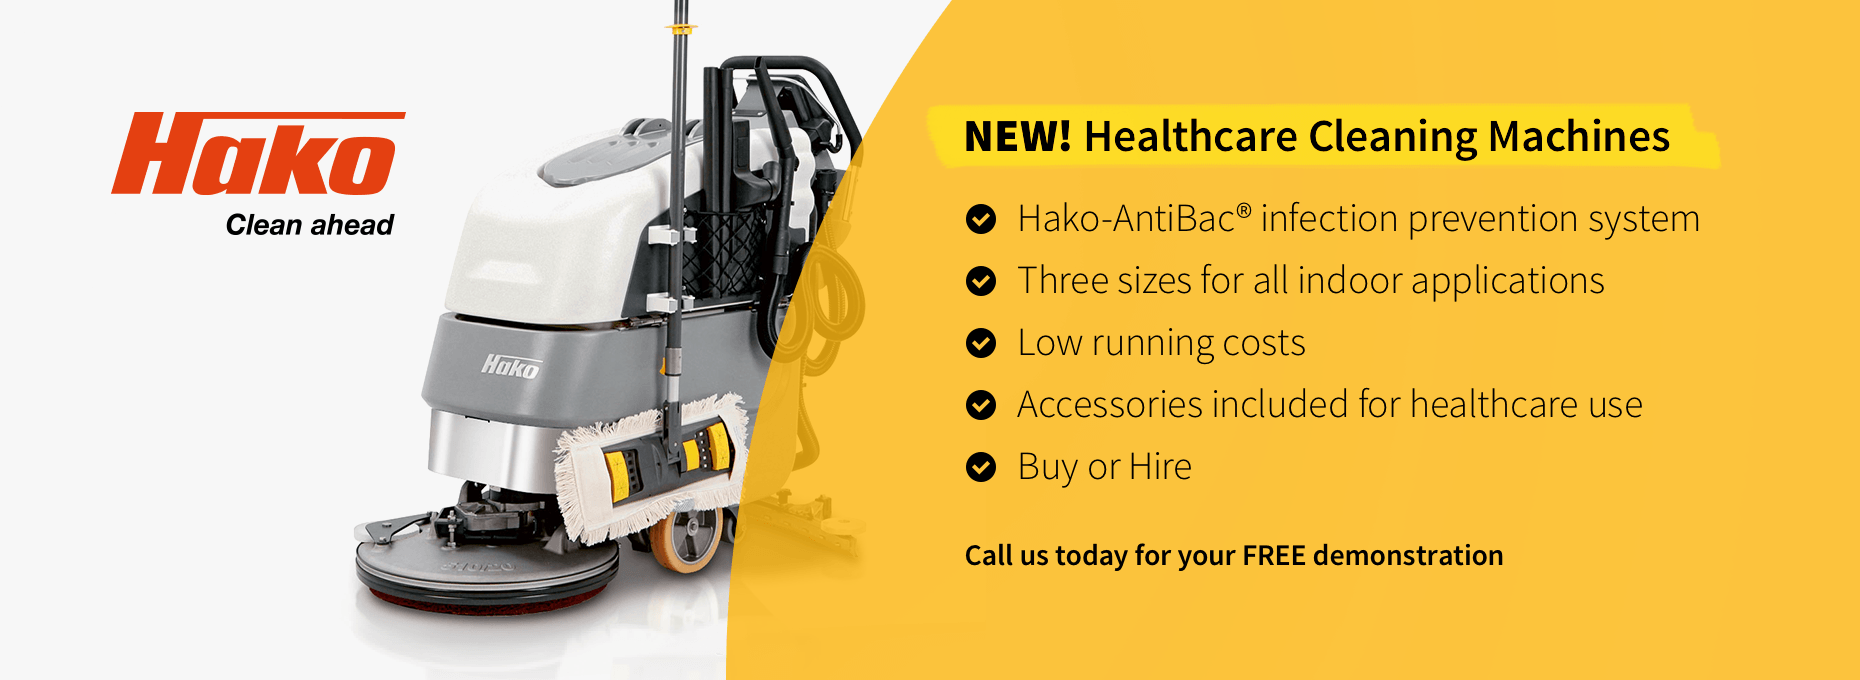 Hako Healthcare Cleaning Machines